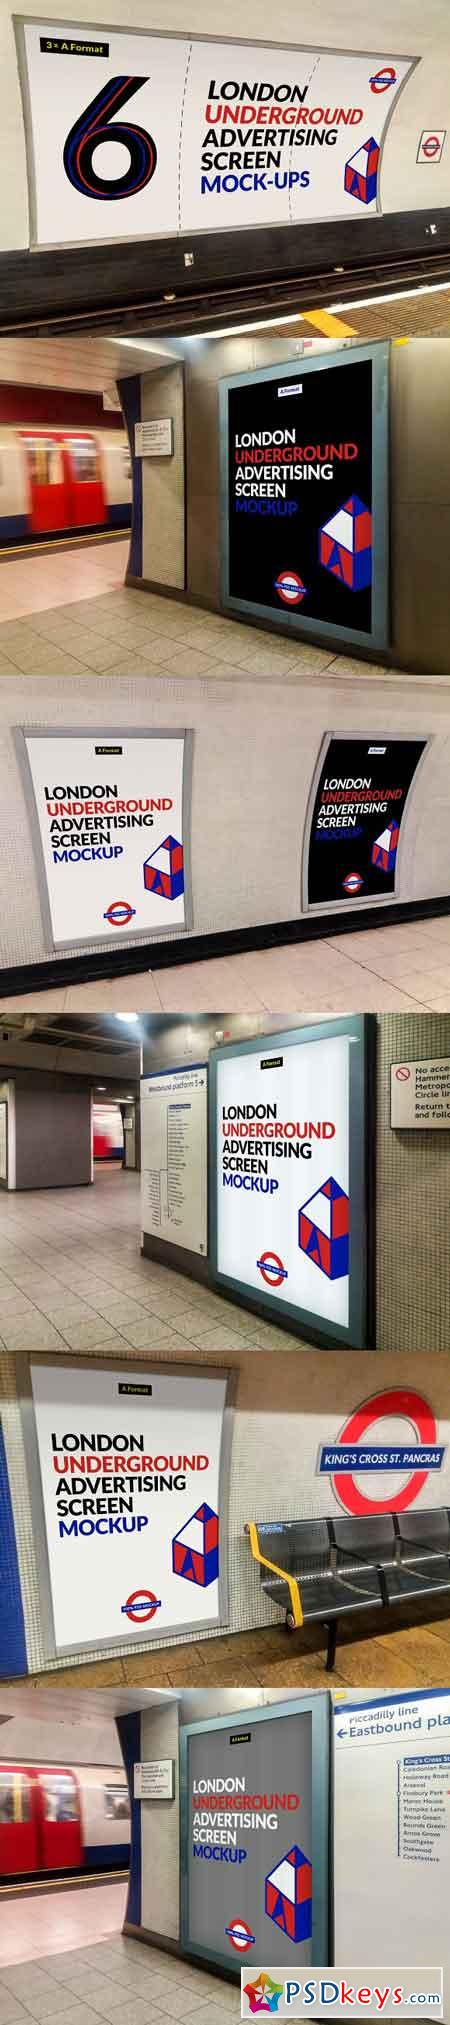 London Underground Screen Mock-Ups 4 2532174